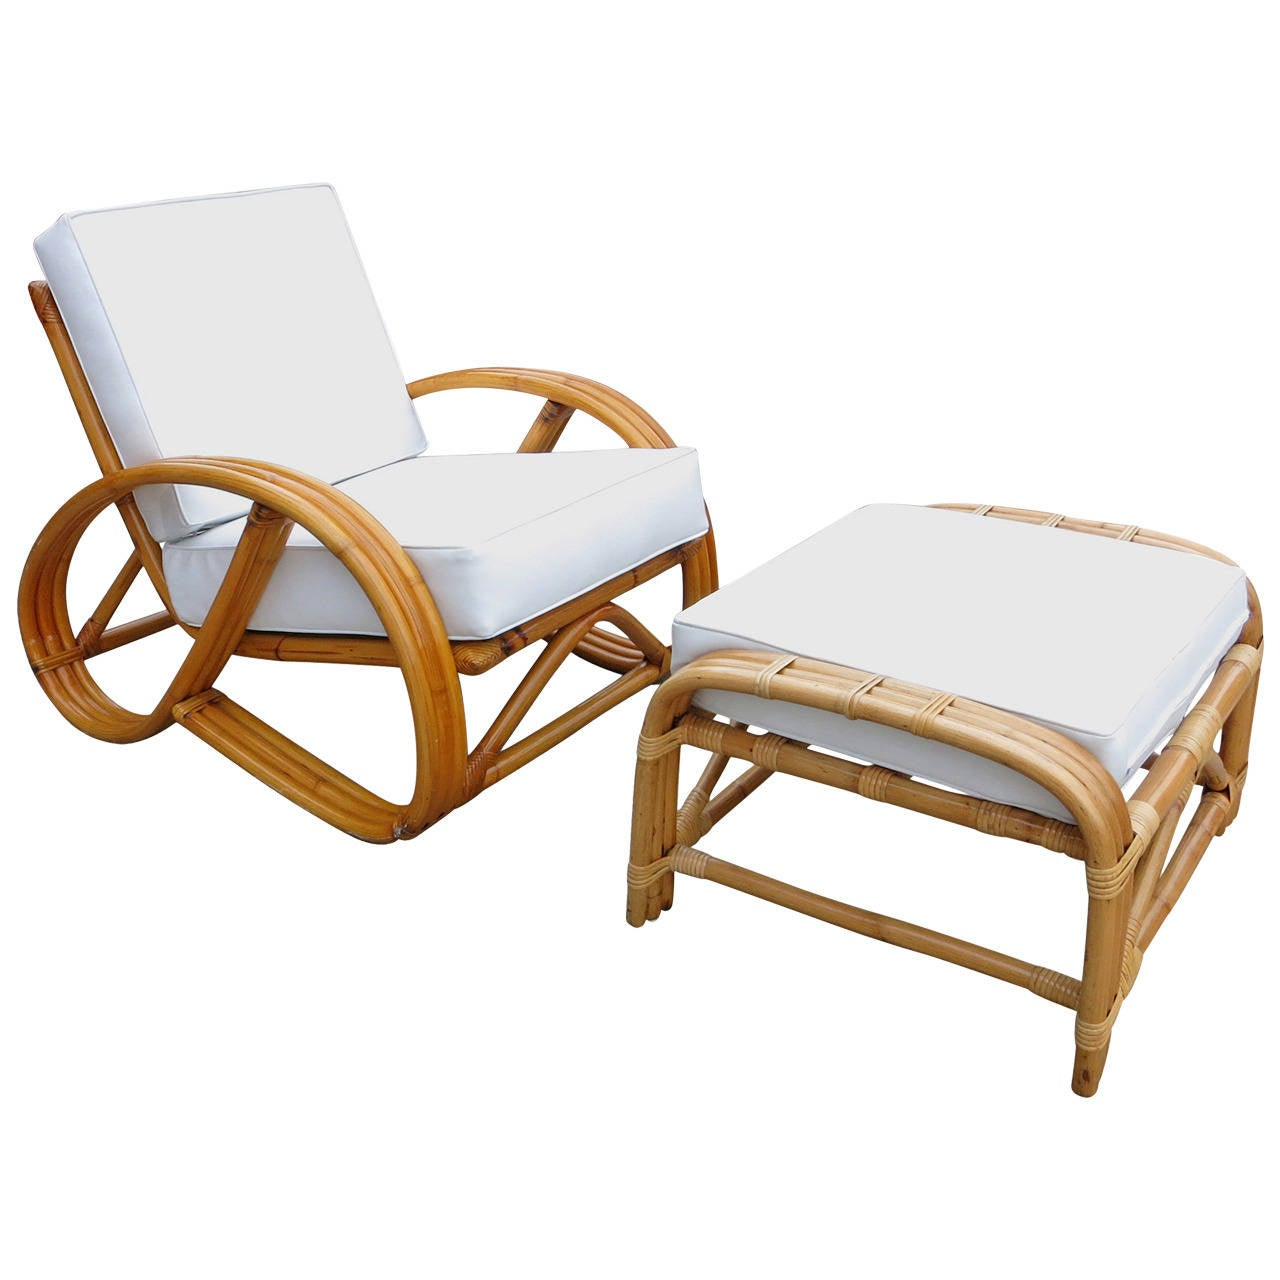 Rattan lounge  3/4 Round Pretzel Rattan Lounge Chair with Ottoman at 1stdibs